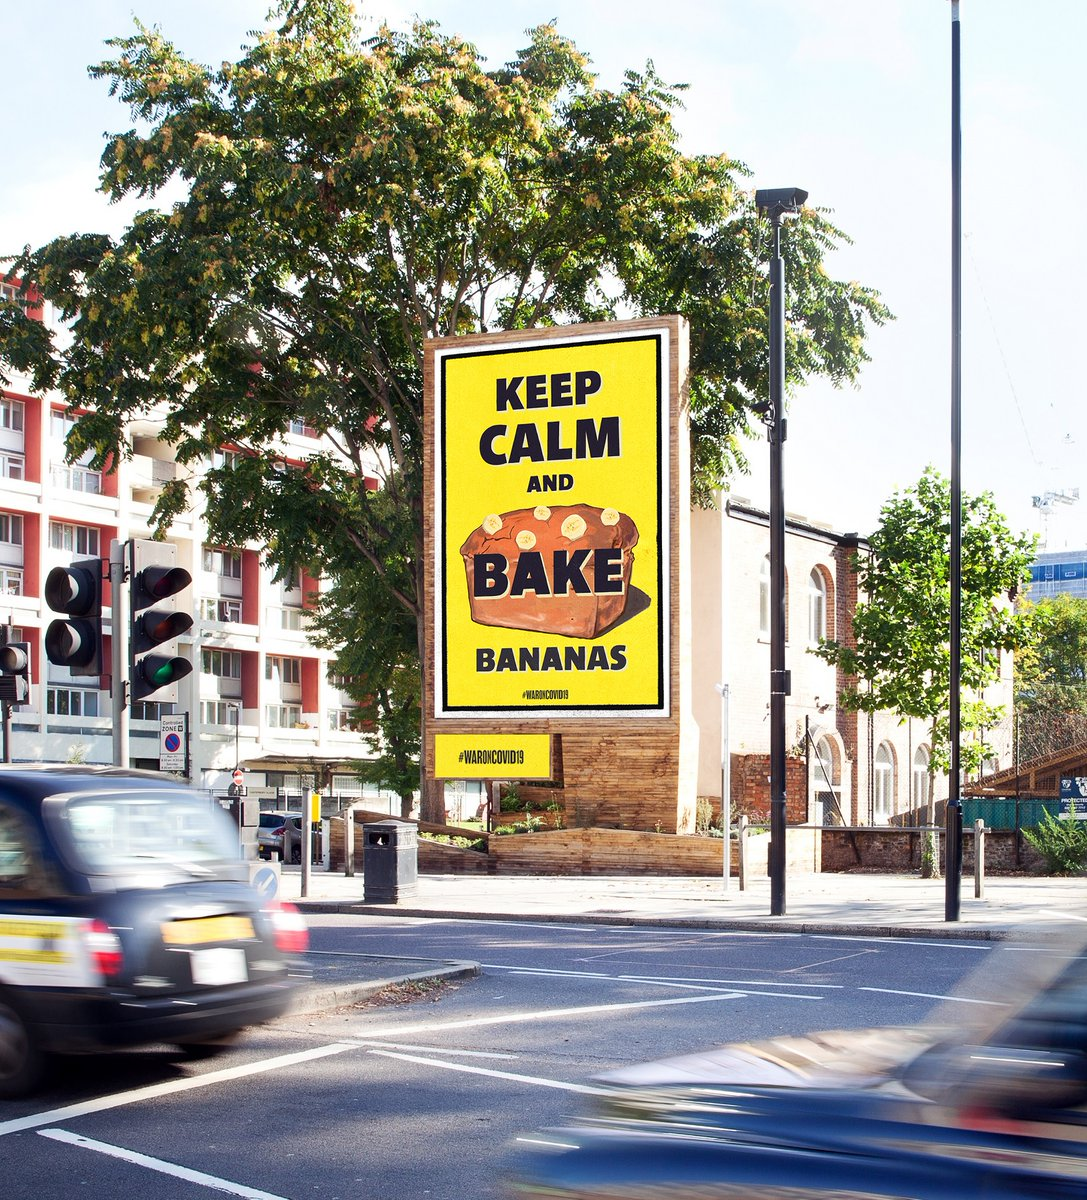 OOH roadside audiences down 50%. Social distancing the new normal. Hard to find the silver linings at work... Love this #WaronCovid19 by @misterhodson & @misterkeet. Just went live on Storm @clearchanneluk after email exchange over weekend #positivity #creativity #OOH #posters